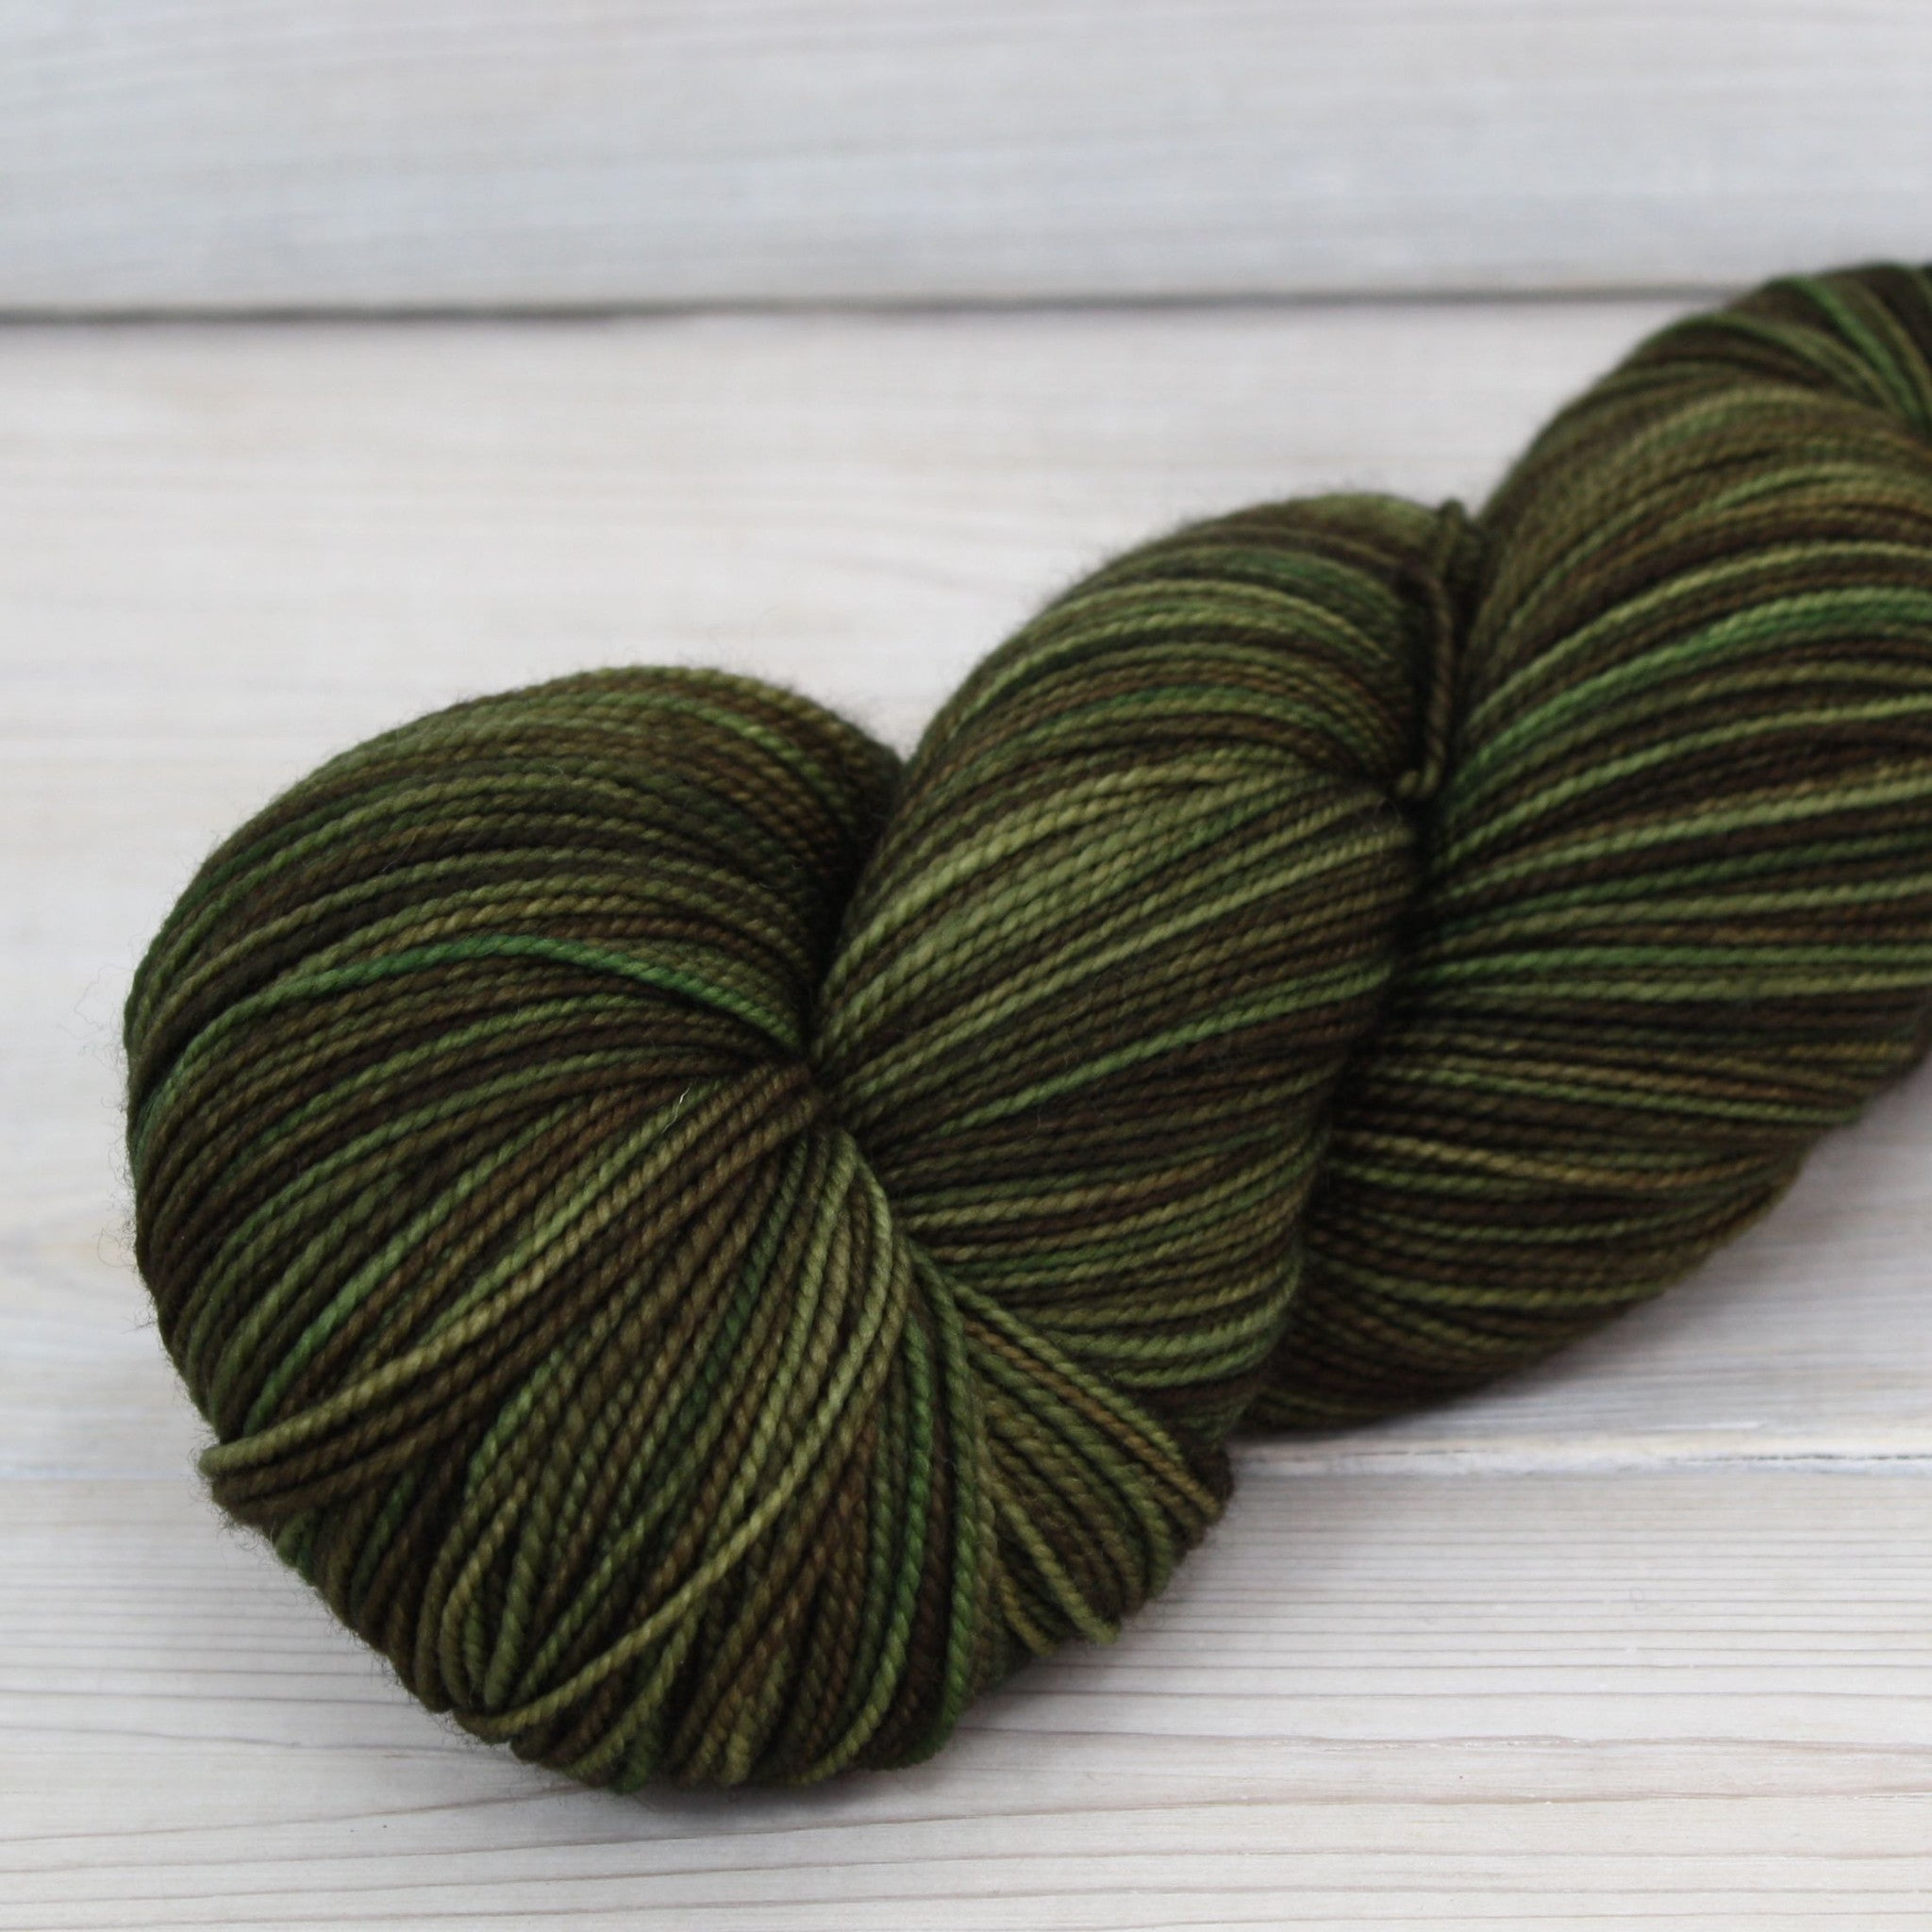 Celeste Yarn | Colorway: Camo